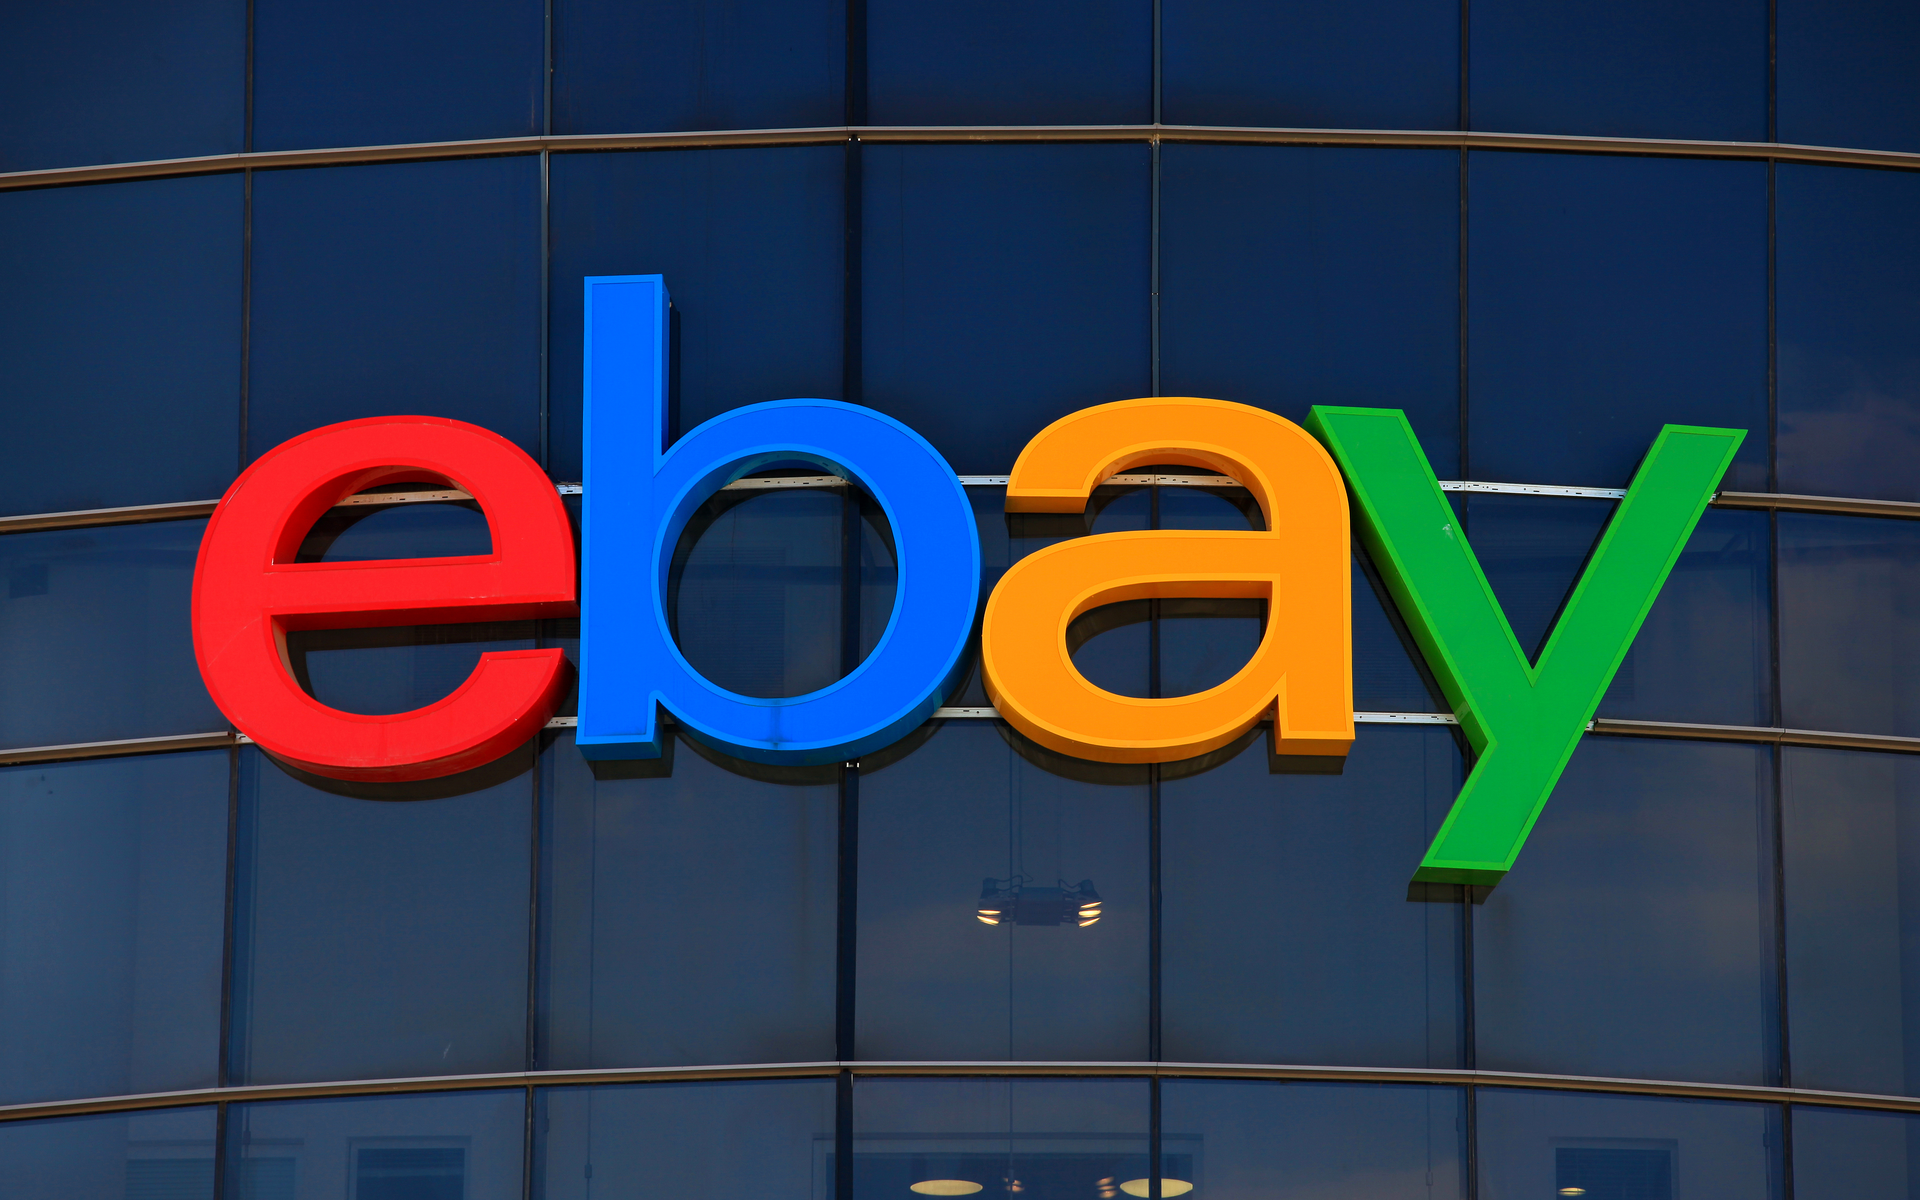 can i use cryptocurrency on ebay